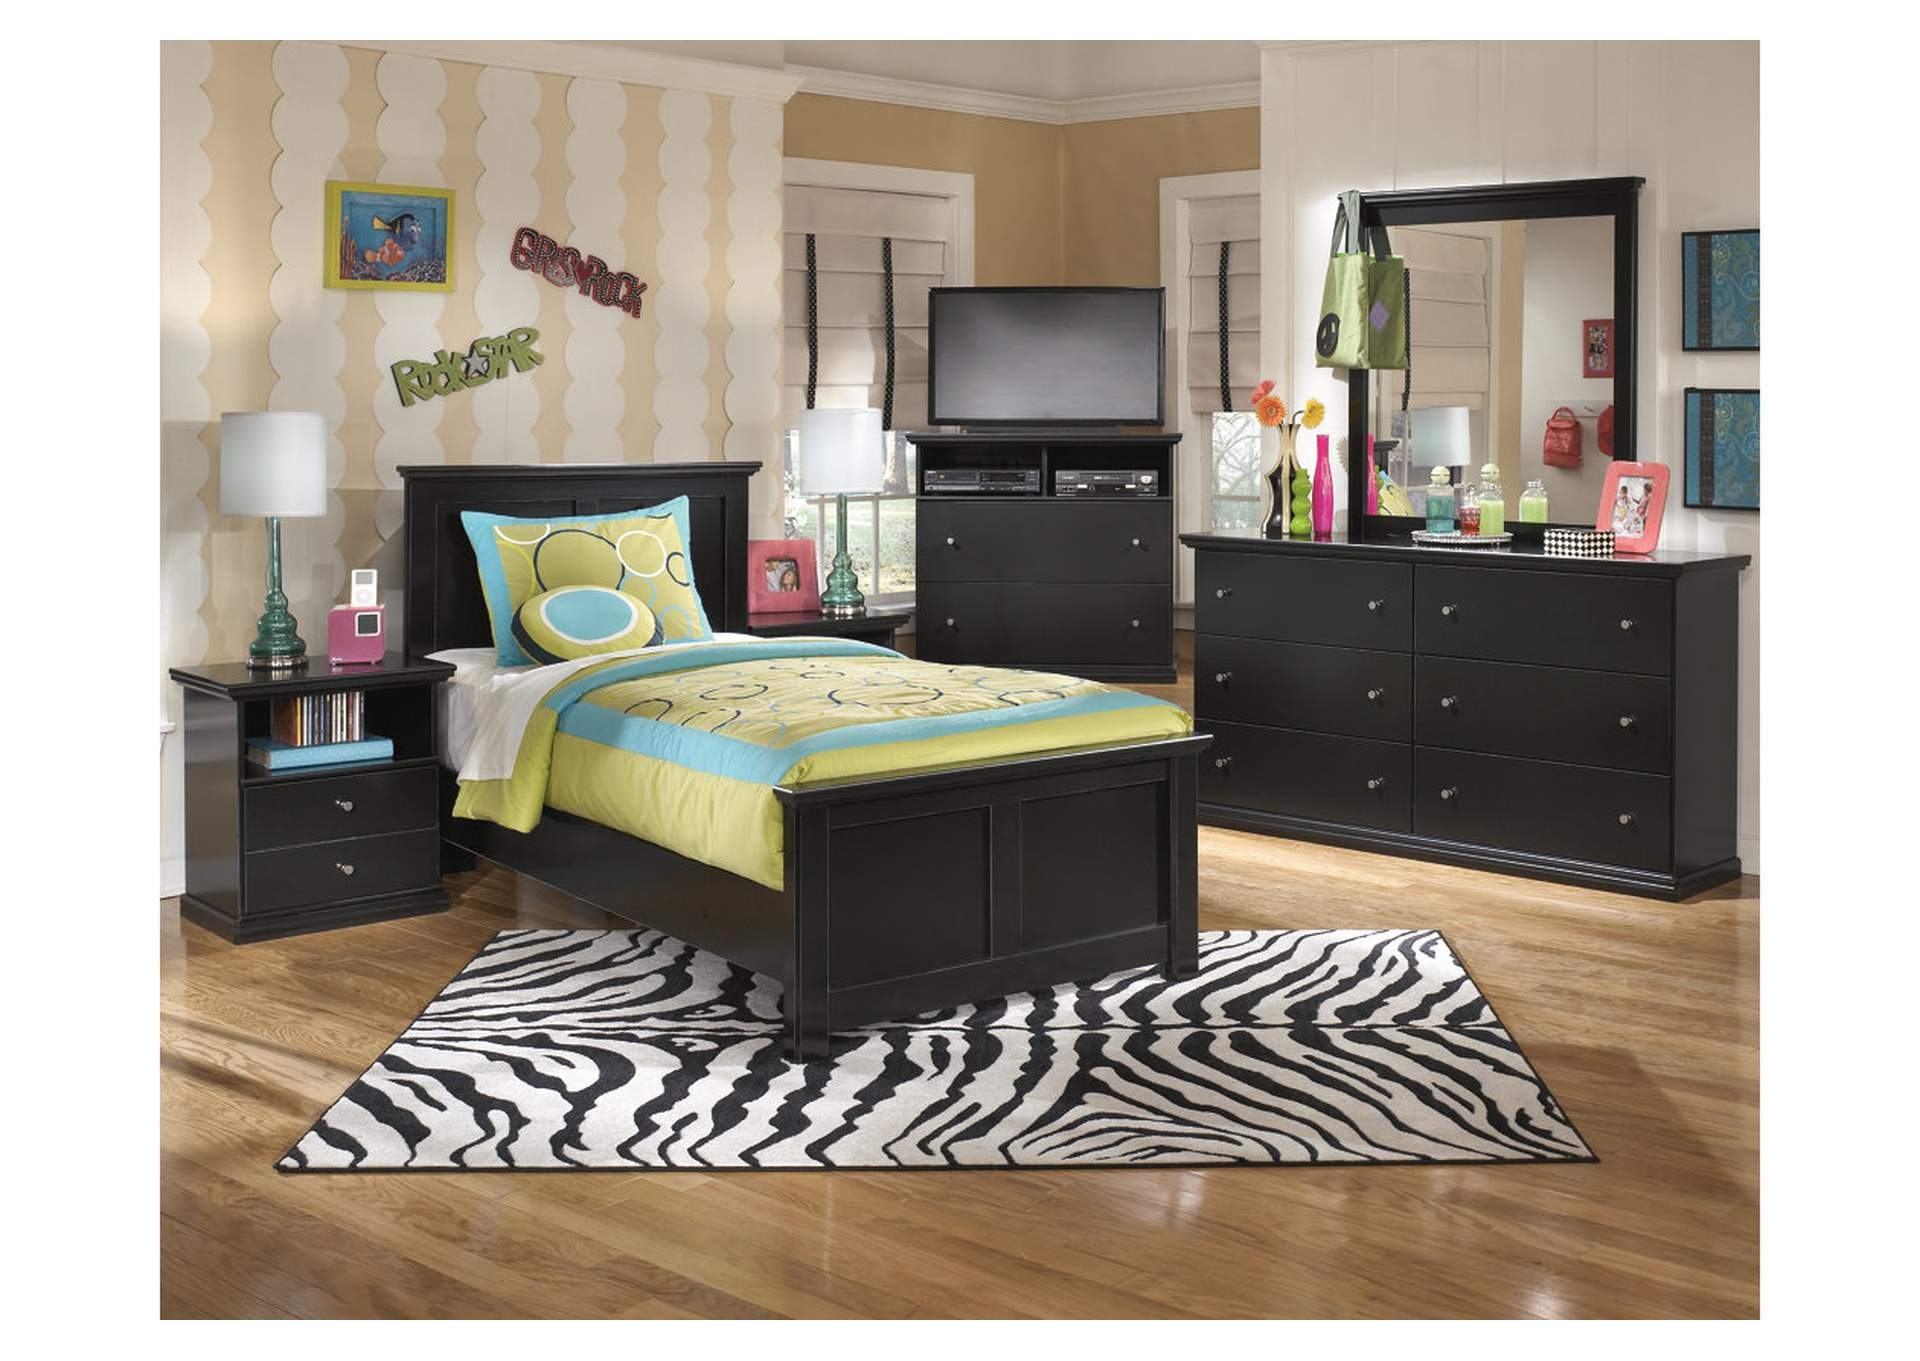 Maribel Full Panel Bed w/Dresser, Mirror, Drawer Chest & Nightstand,Signature Design By Ashley